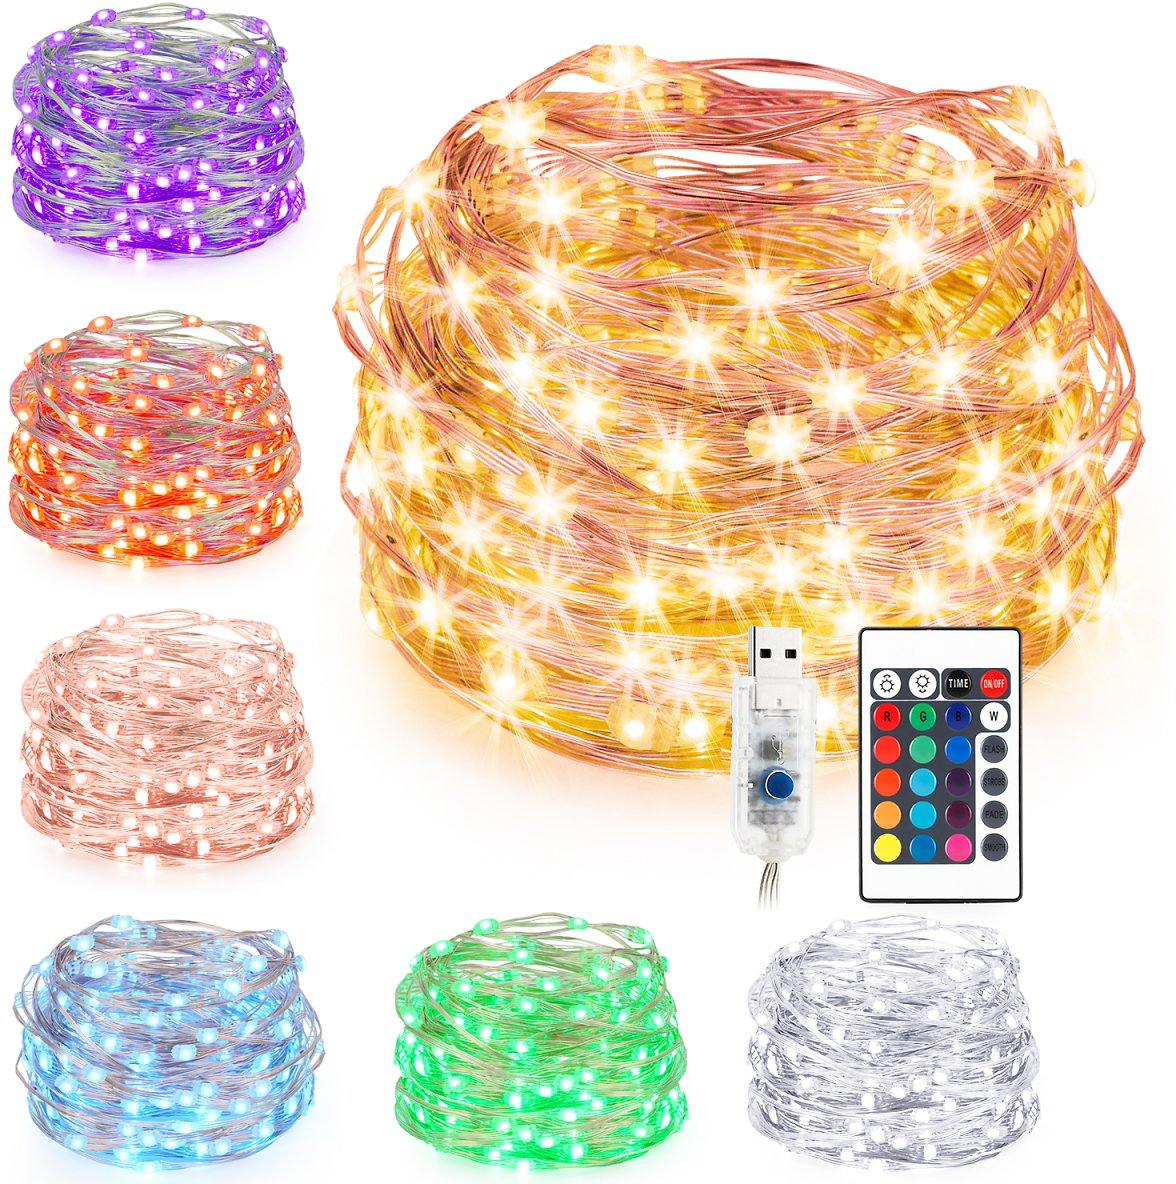 Kohree LED String Lights,USB Powered Multi Color Changing String Lights with Remote,100leds Indoor Decorative Silver Wire Lights